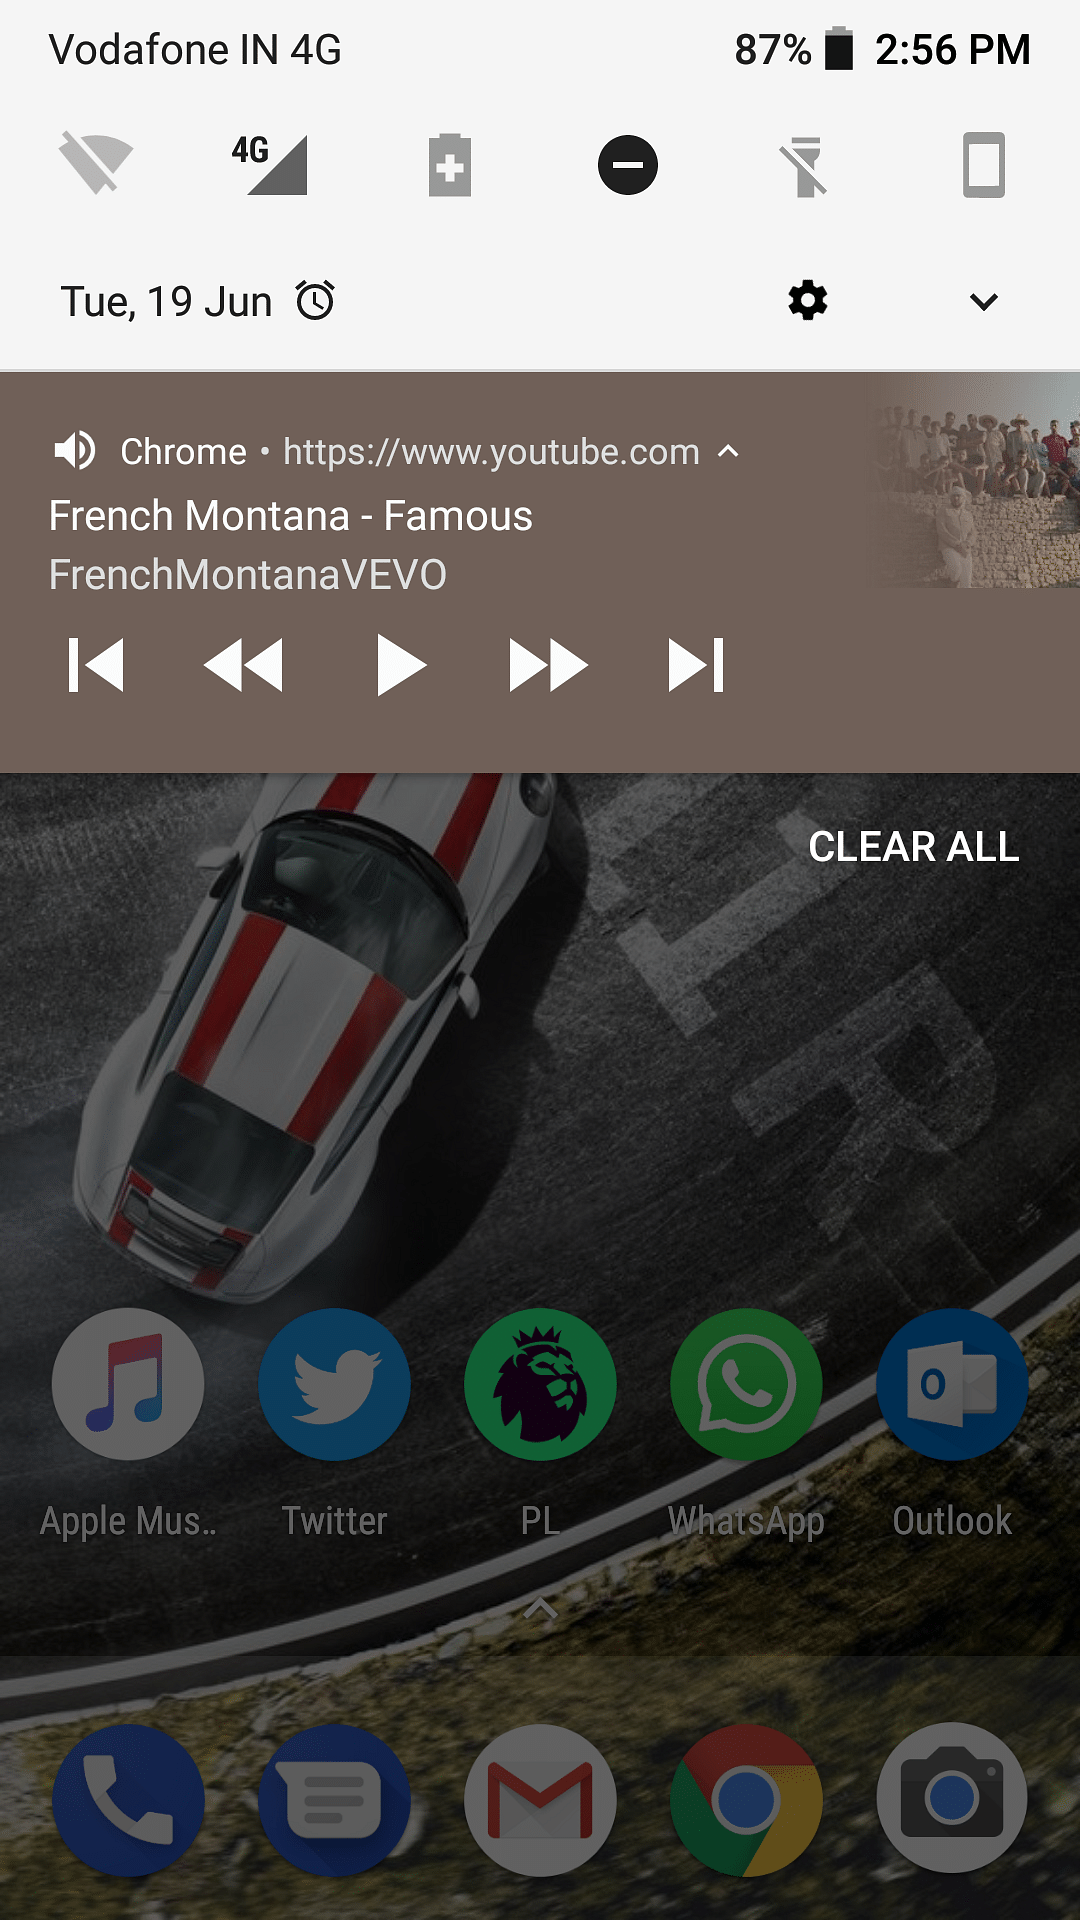 How the YouTube notification bar looks on your drop down menu.